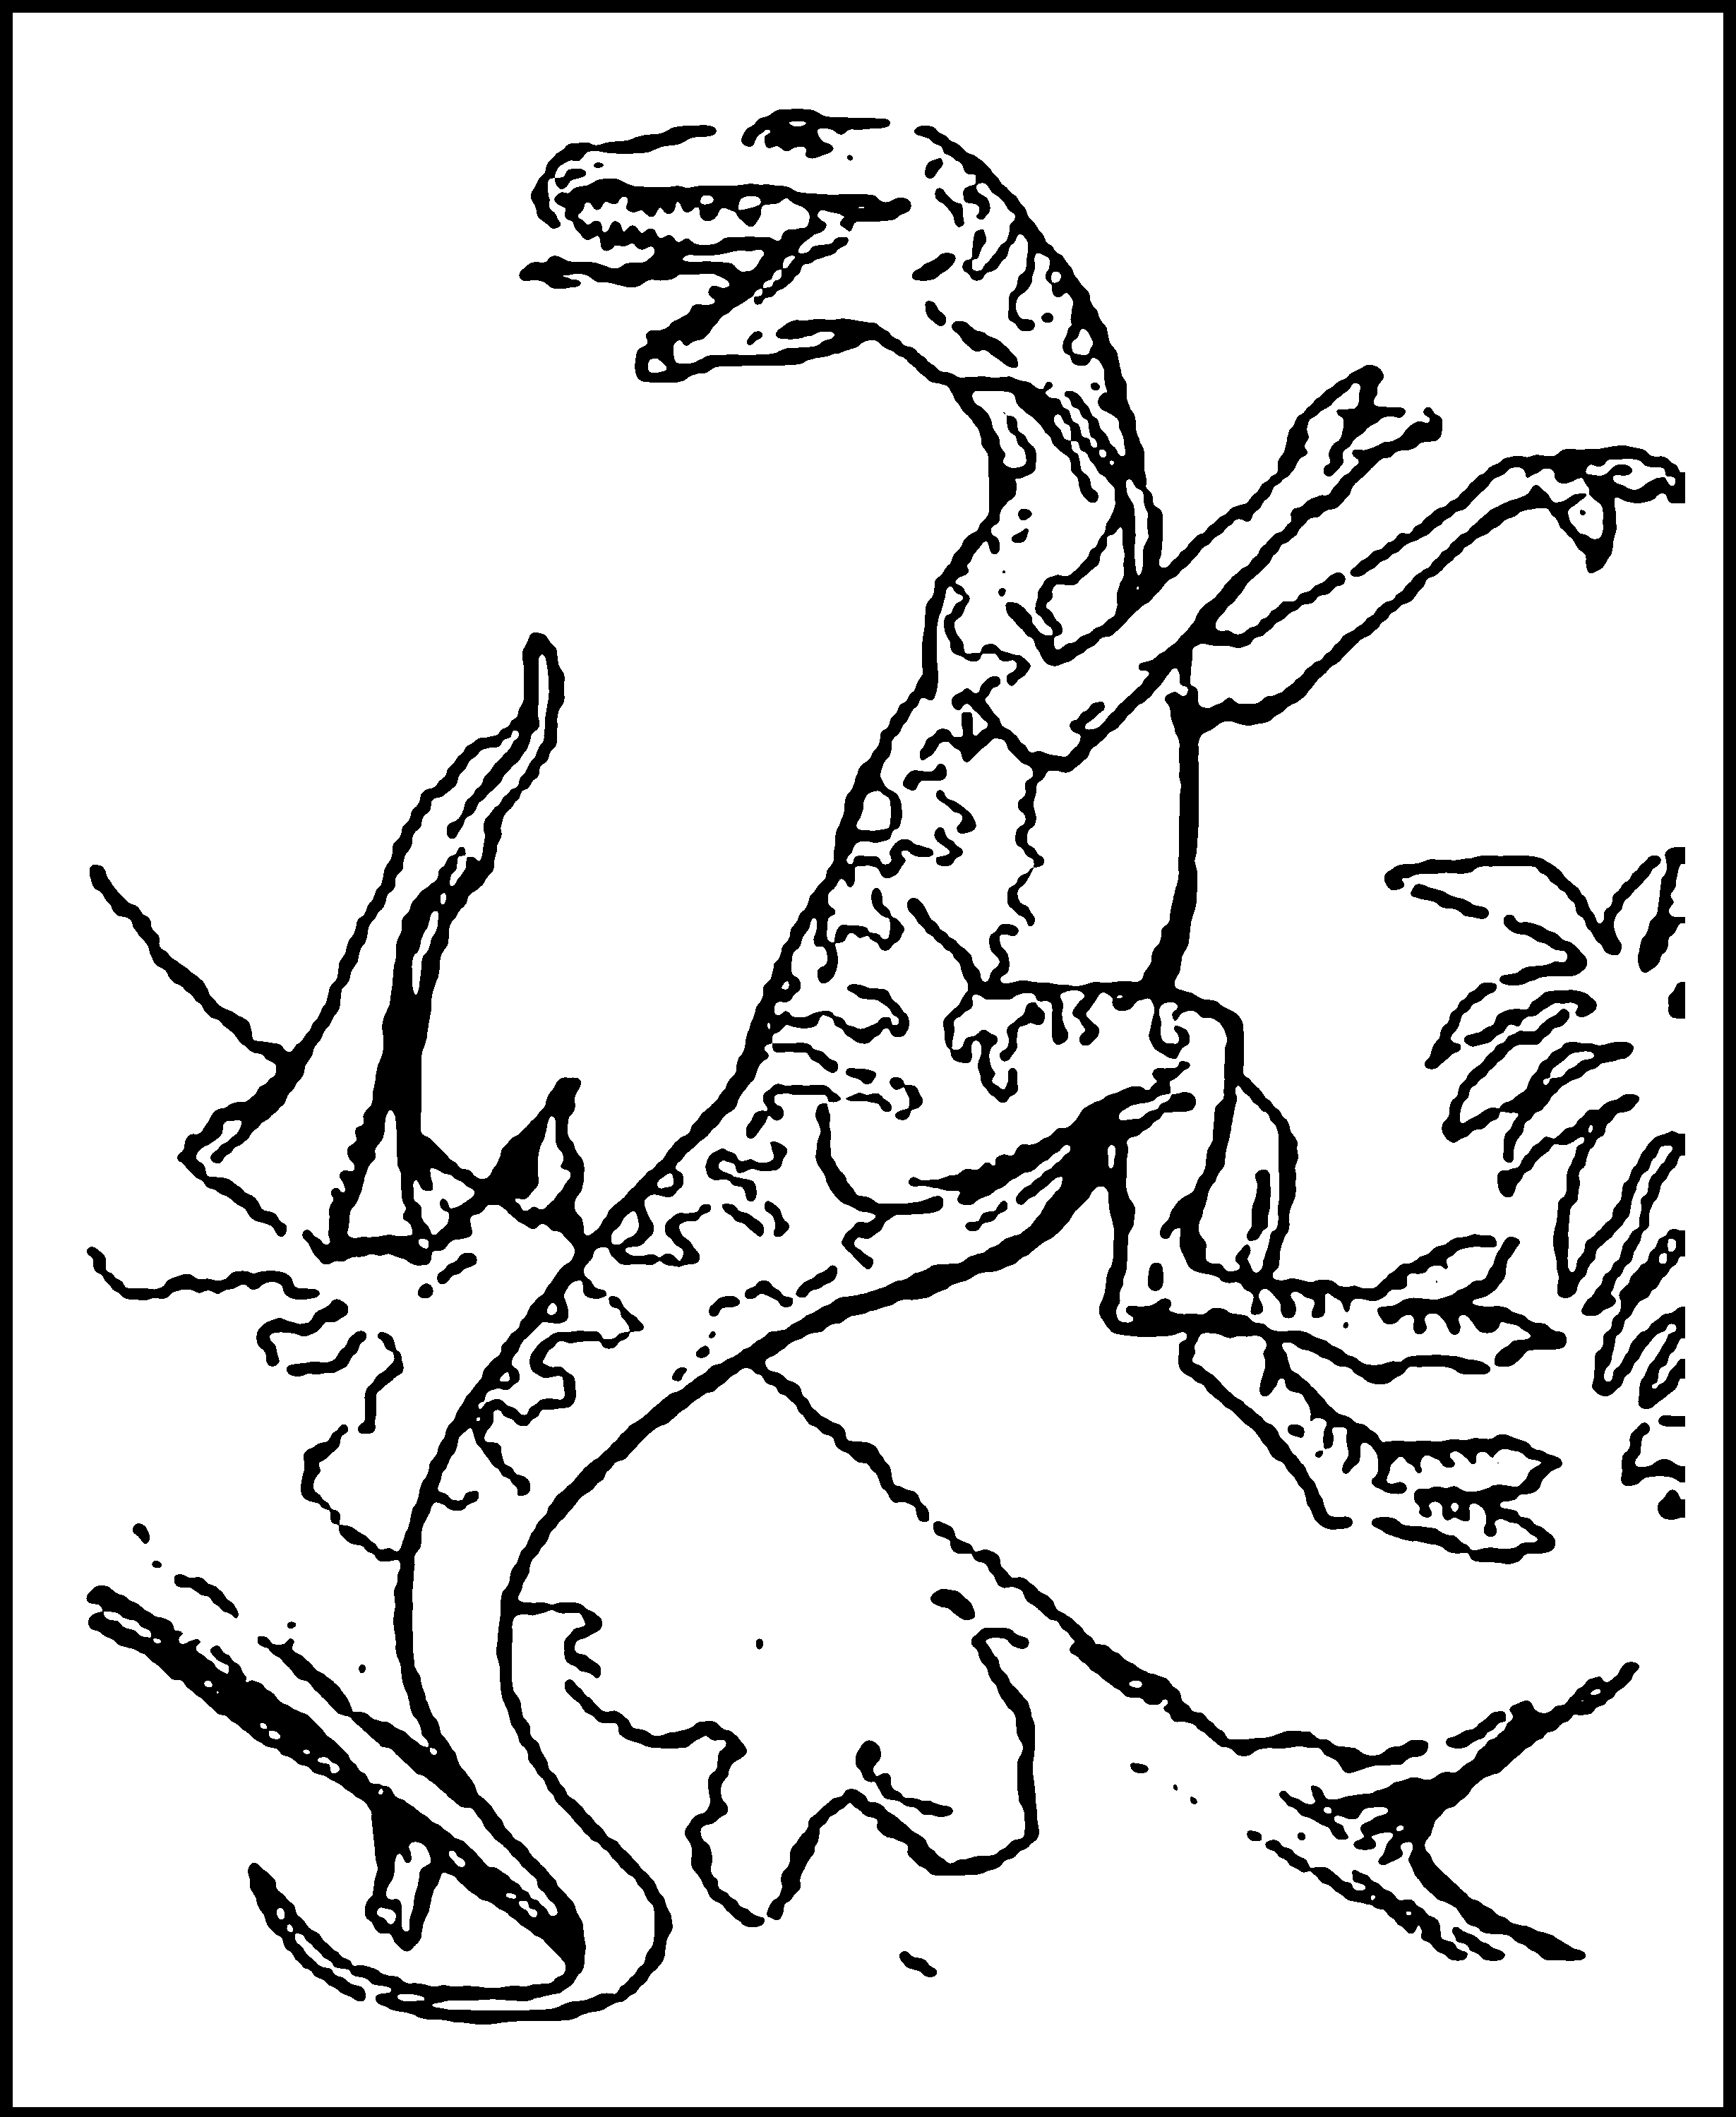 dinosaurus coloring pages - photo#29